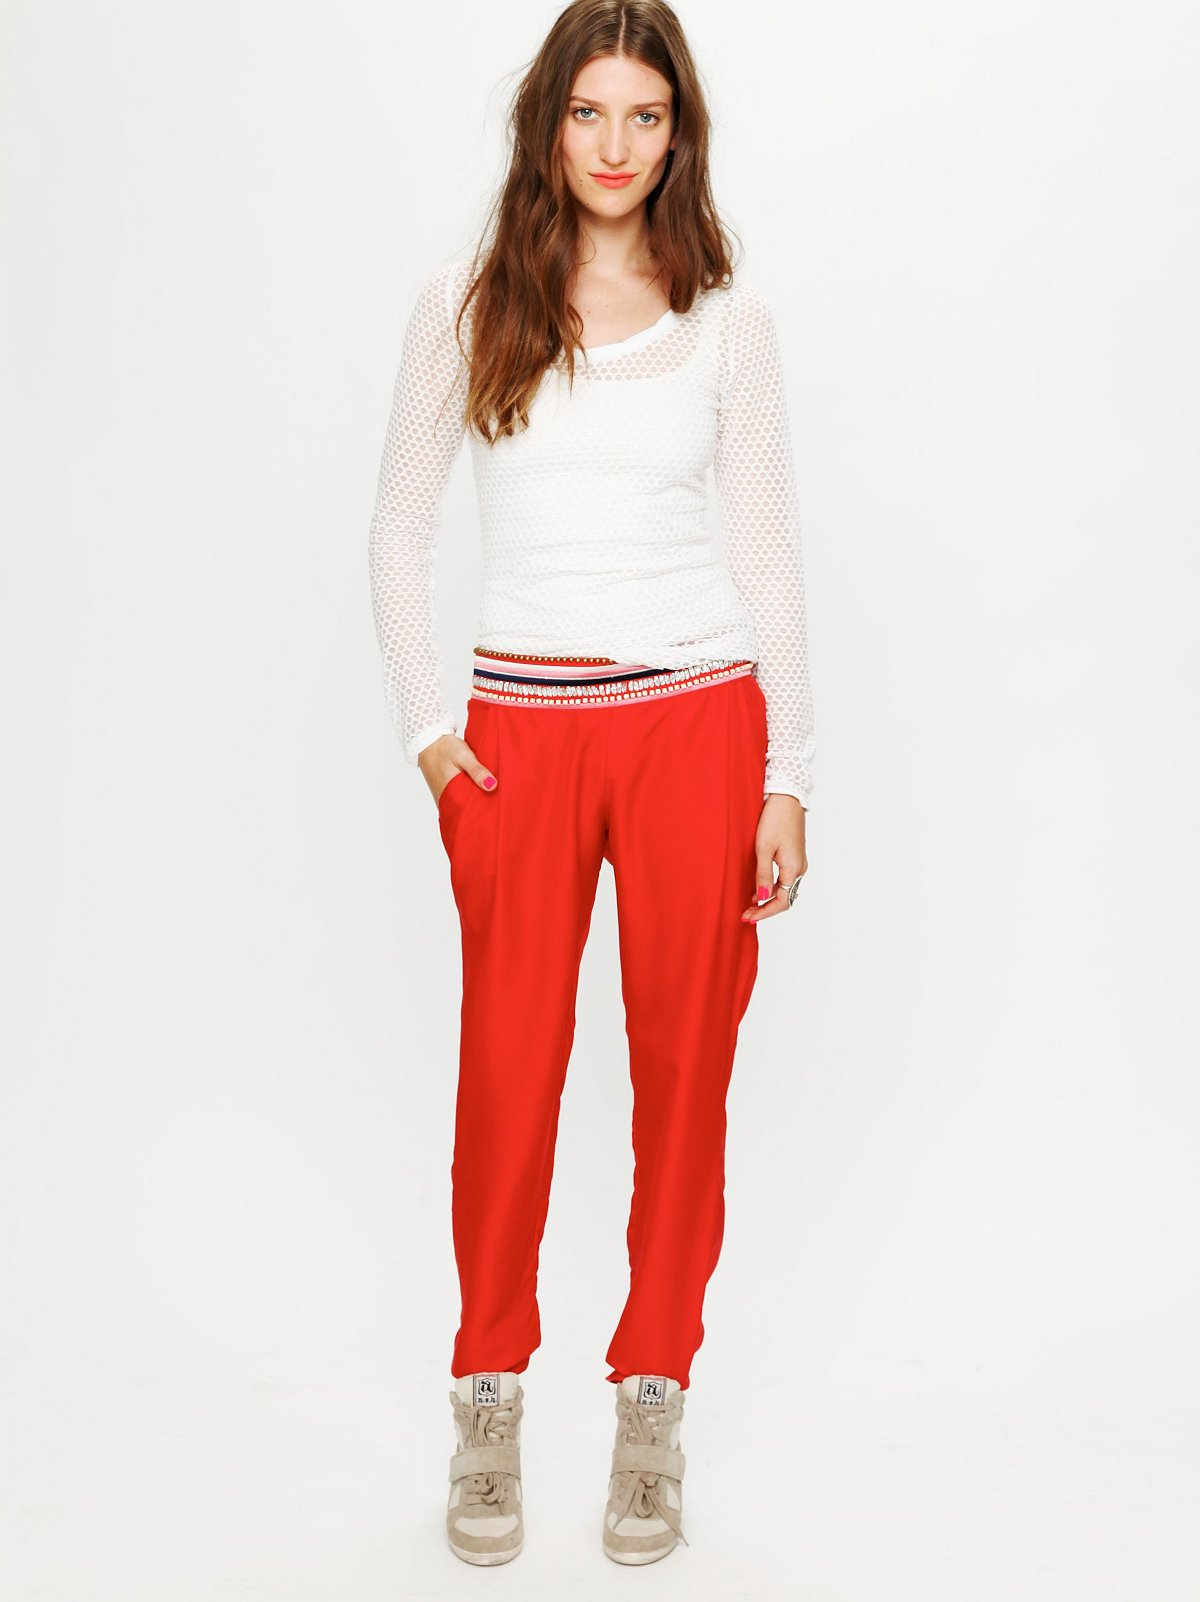 What Comes to Mind Embellished Pant